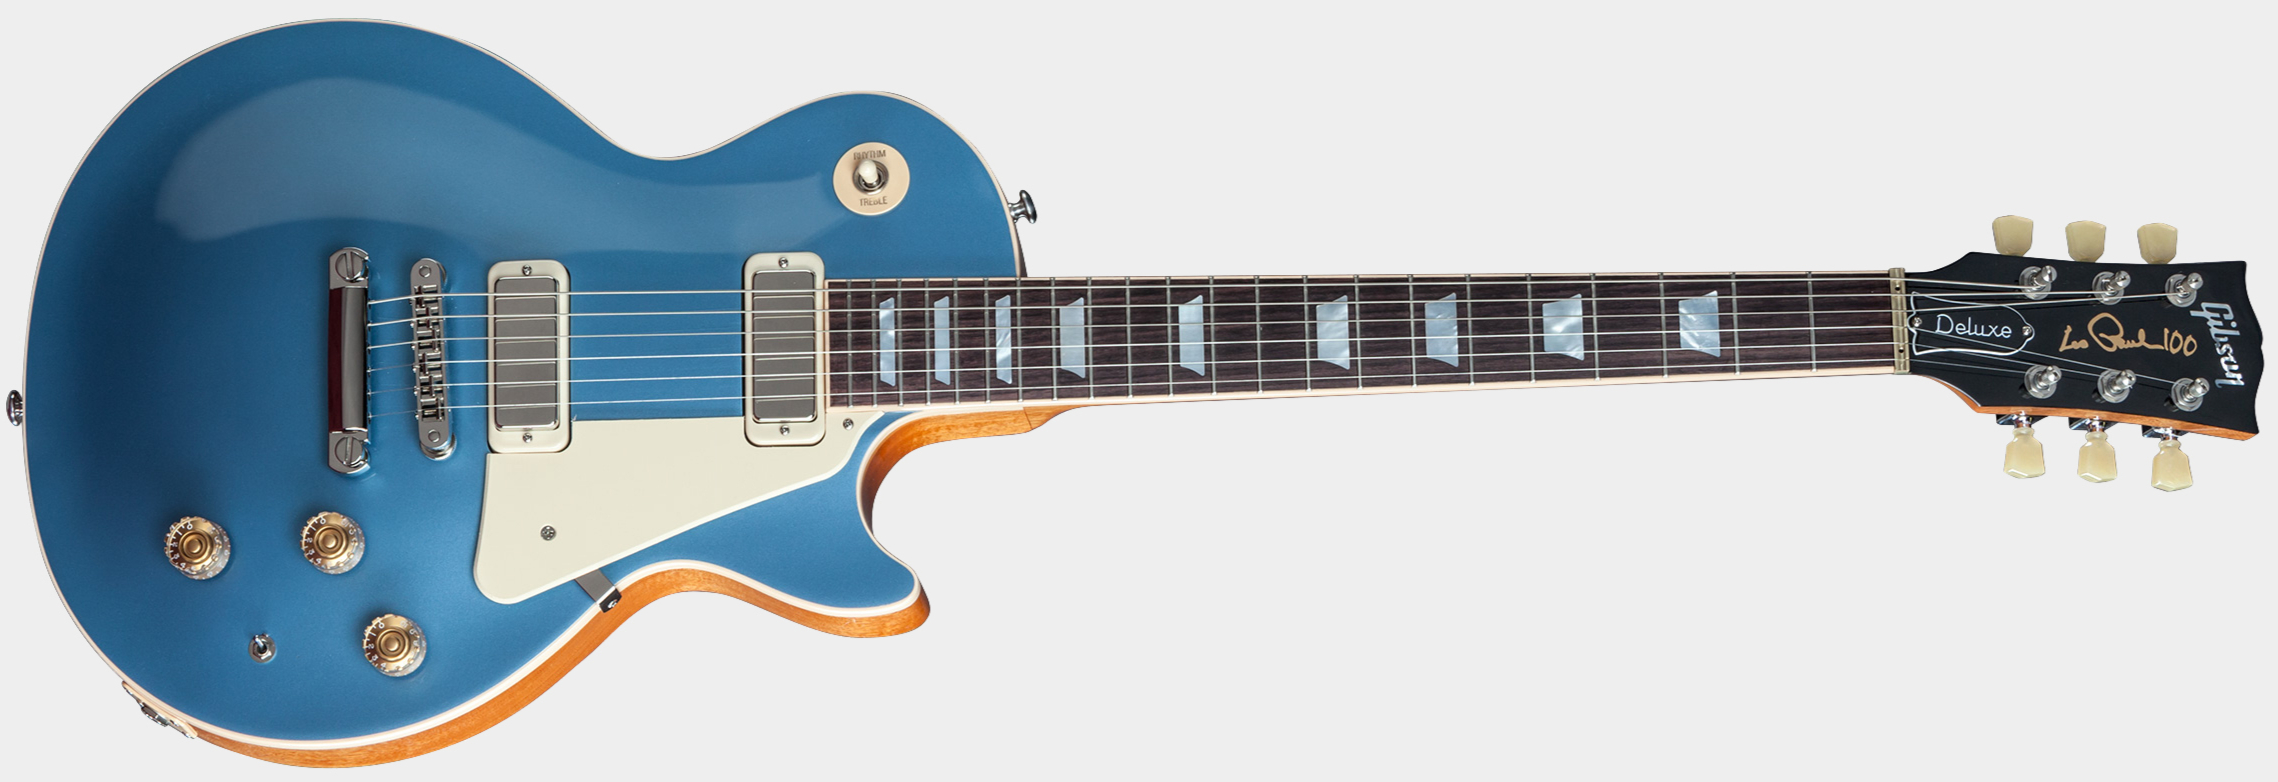 GIBSON Les Paul Deluxe Metallic Pelham Blue